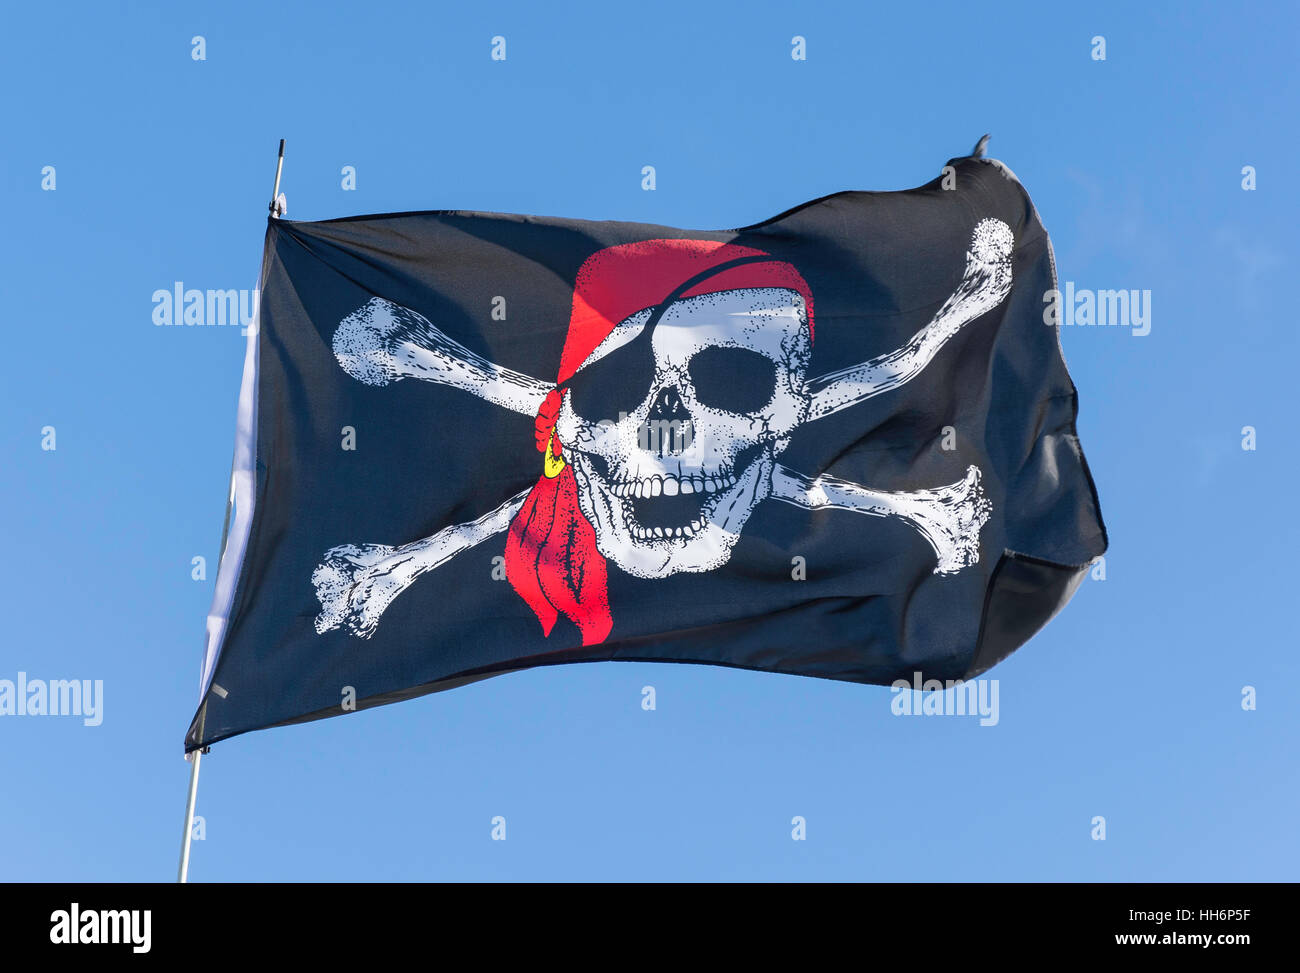 Pirate flag on boat by River Thames towpath, Old Windsor, Berkshire, England, United Kingdom - Stock Image